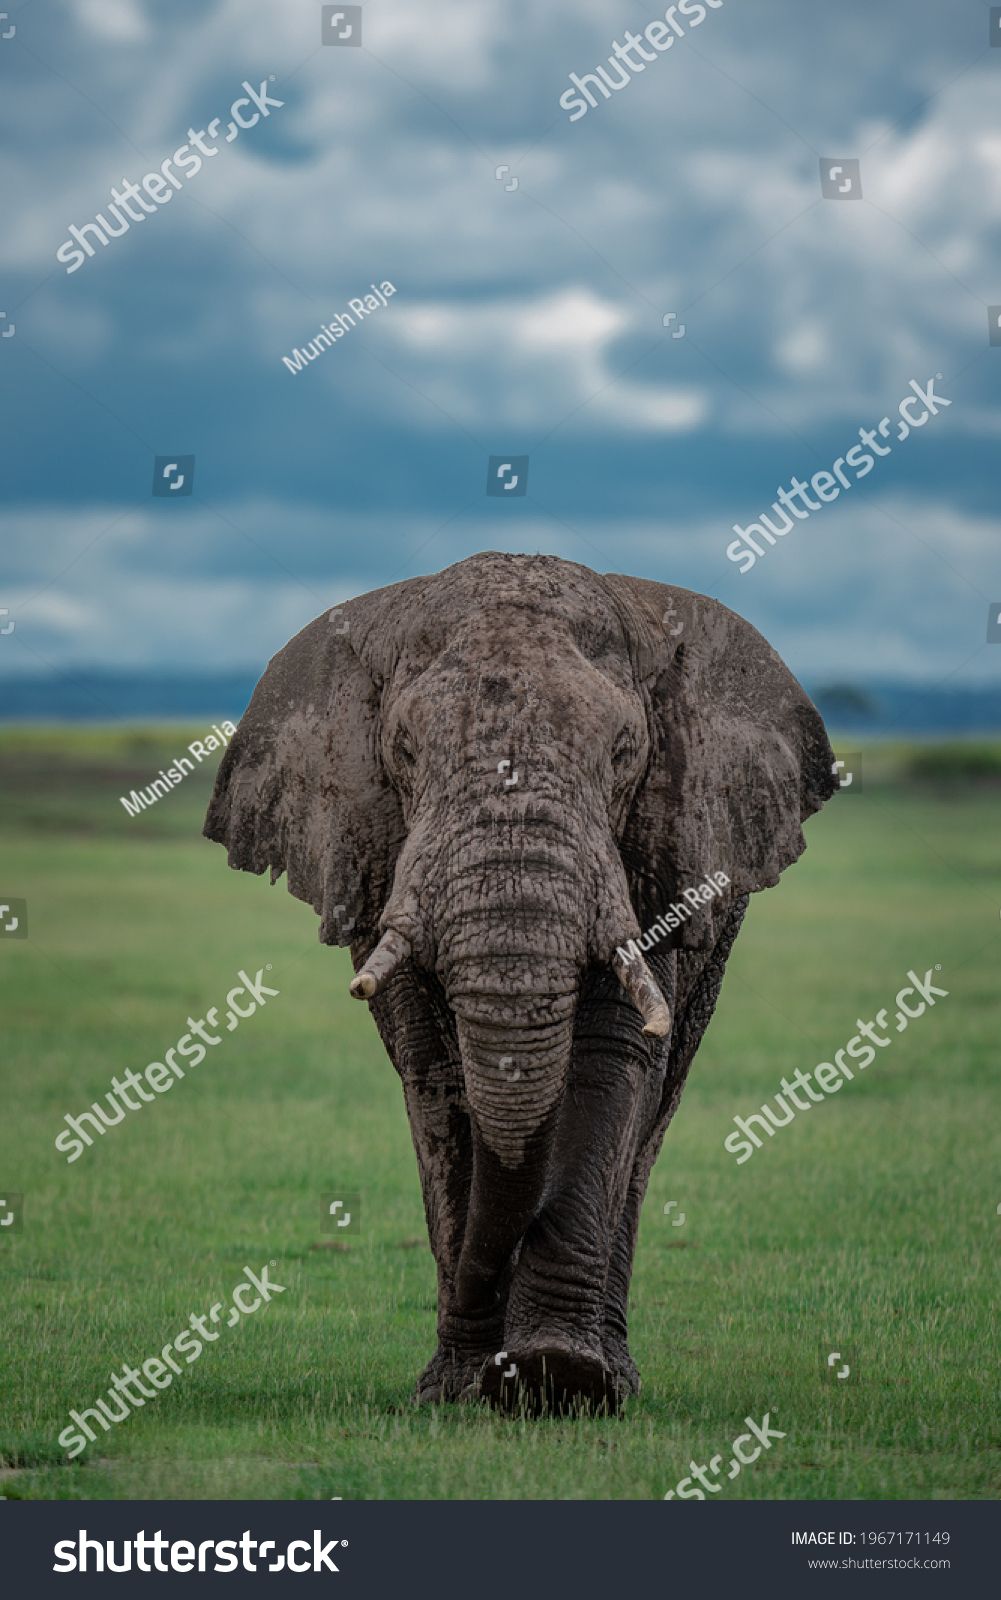 The bold African tusker - Male Elephant #1967171149